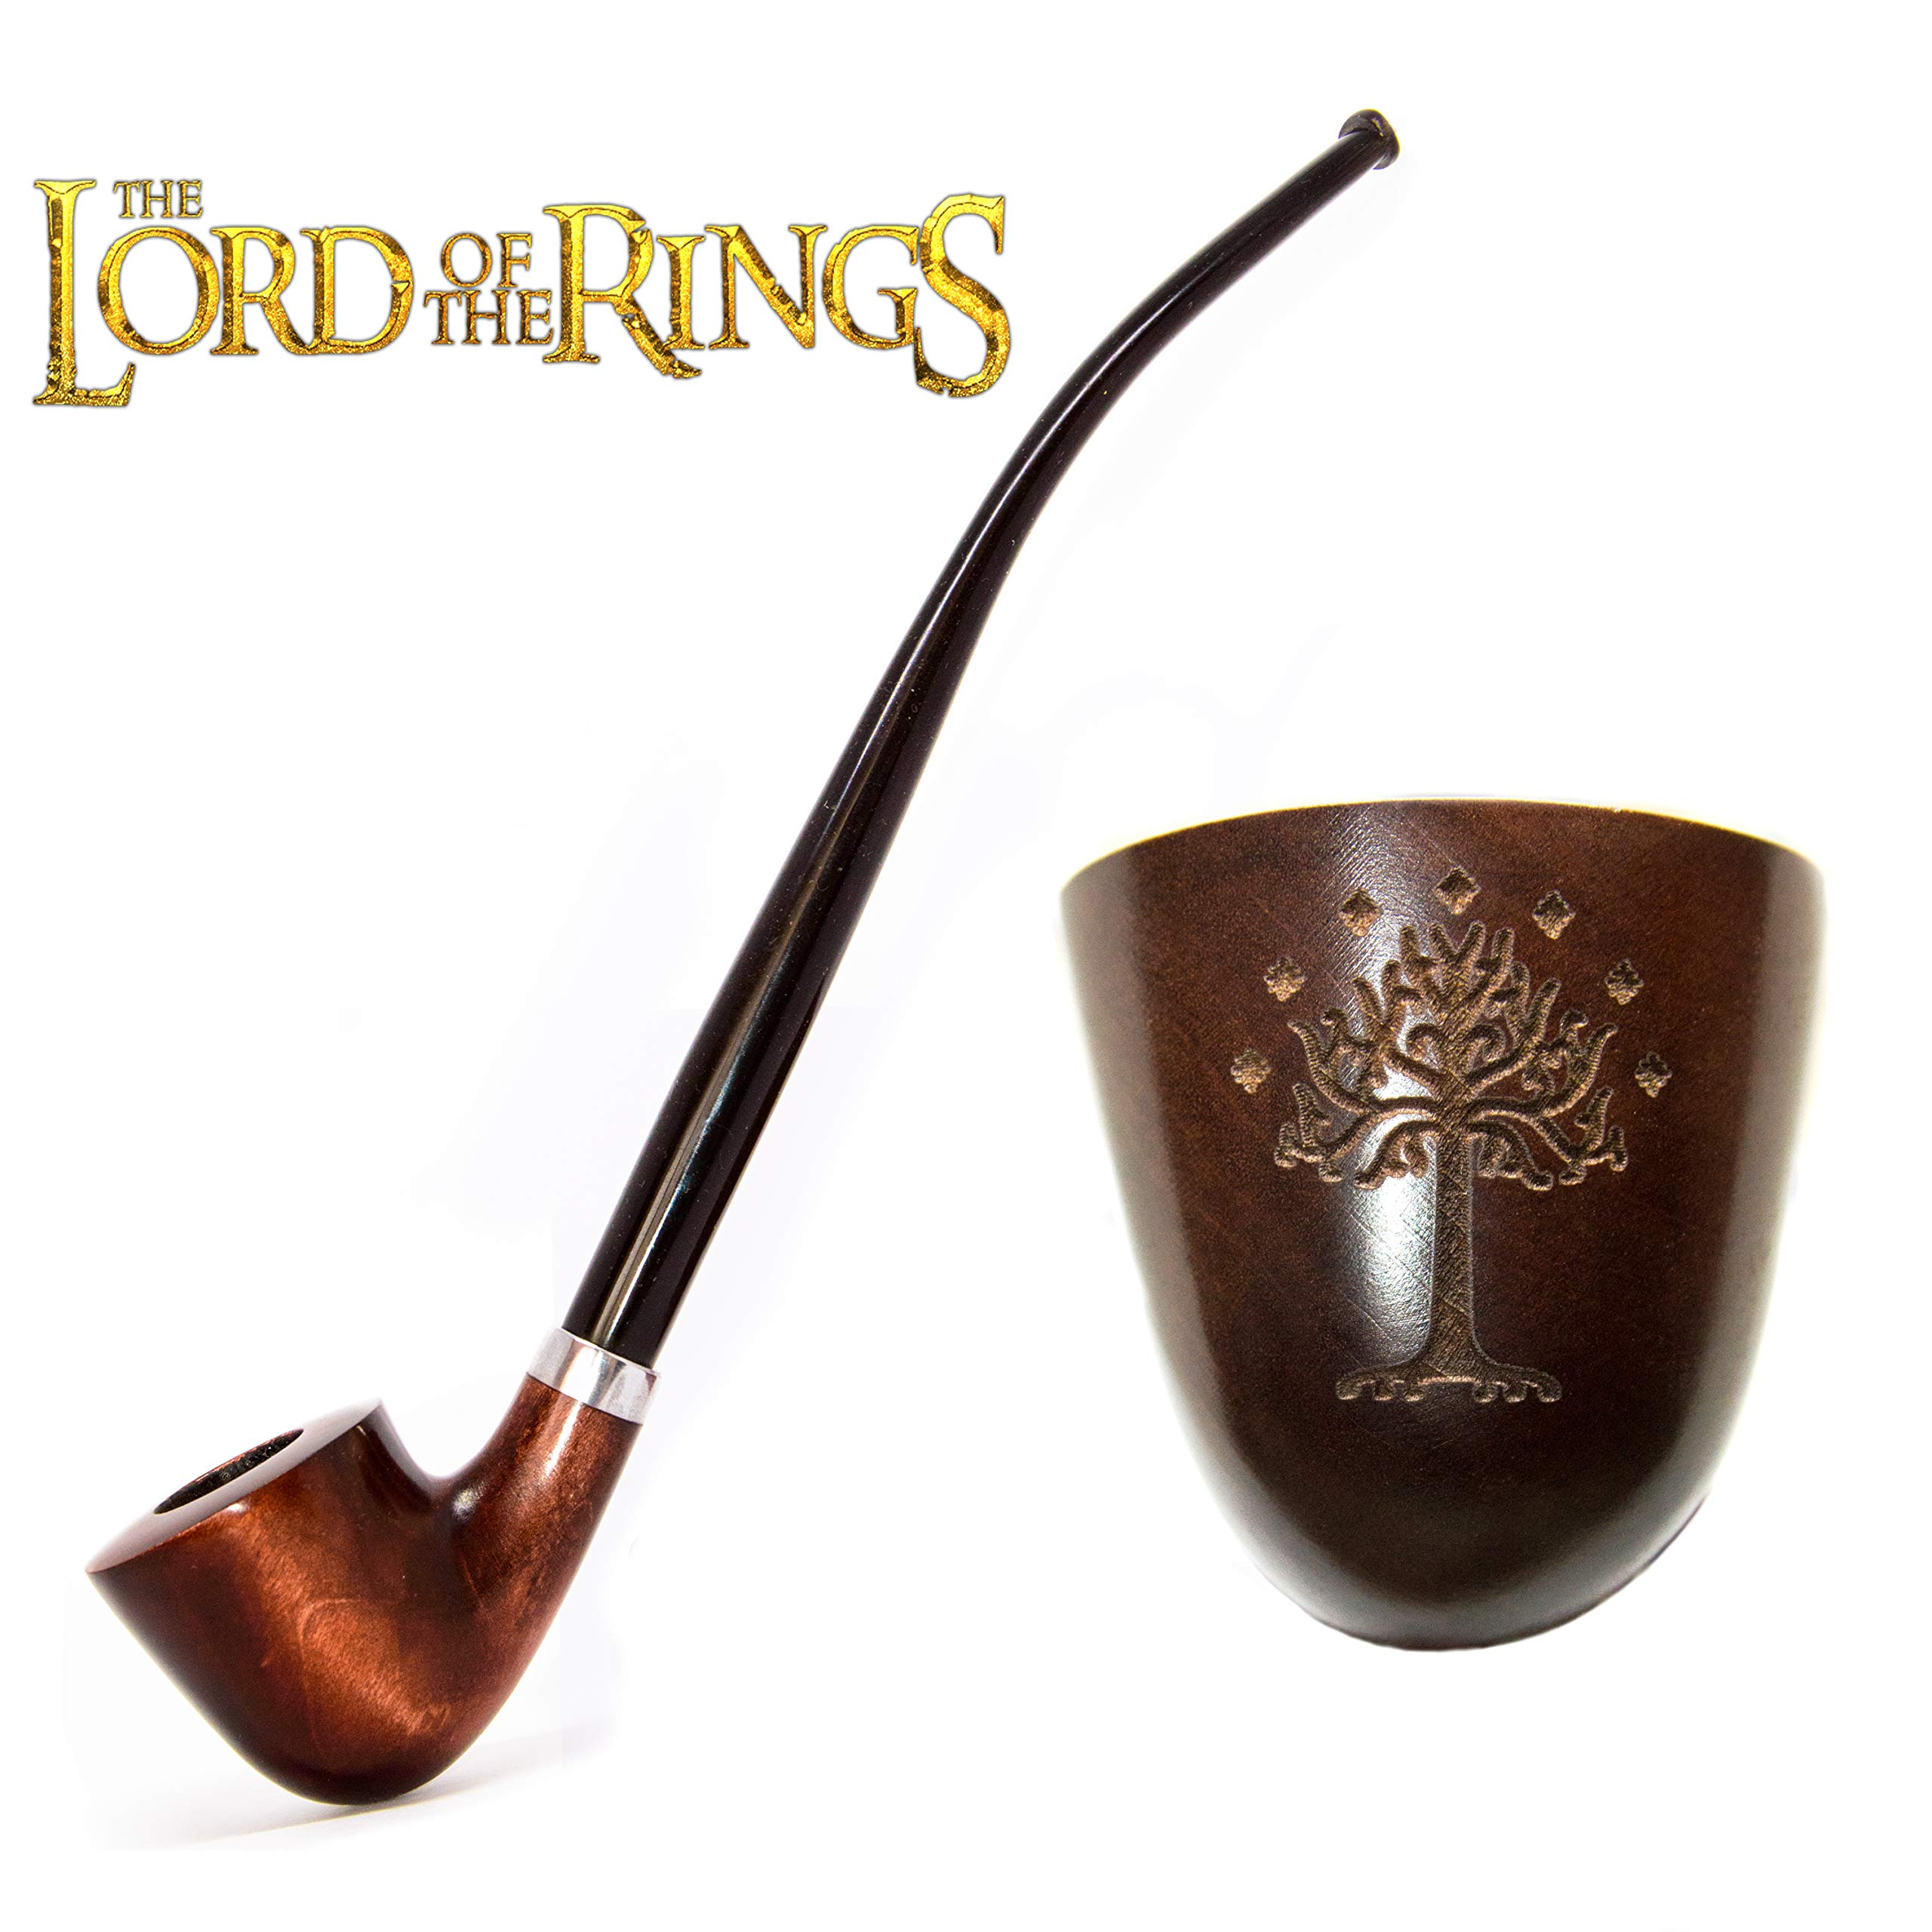 KAFpipeWorkshop Tobacco pipe Gandalf pipe Wooden pipe Tobacco Smoking pipe Lord of the Rings pipe Churchwarden pipe ''Tree of Gondor''